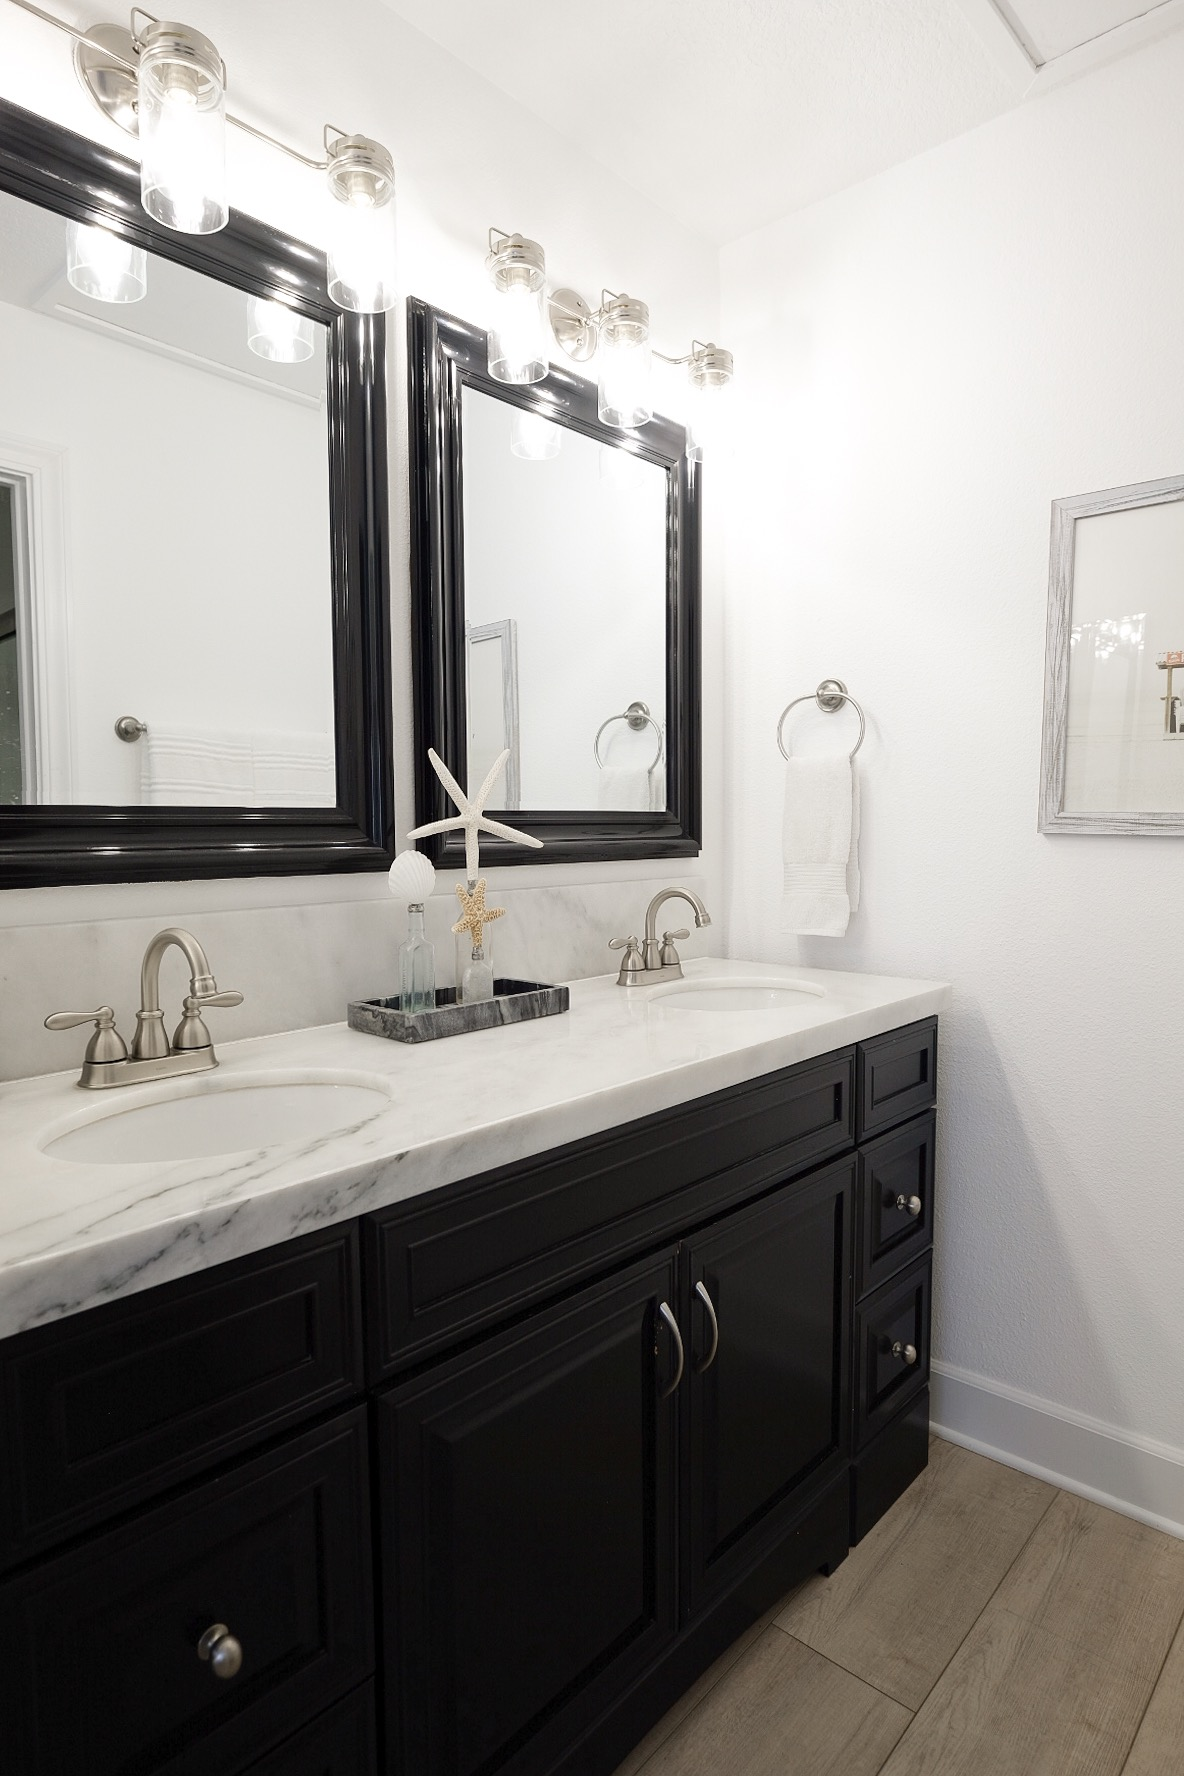 Pros and cons of marble countertops in kitchens and bathrooms.  White kitchen with marble countertops and silver hardware.  Light wood flooring.  Light wood LVP floors. Carrera marble kitchen. Black and white bathroom with light LVP hard wood floors.